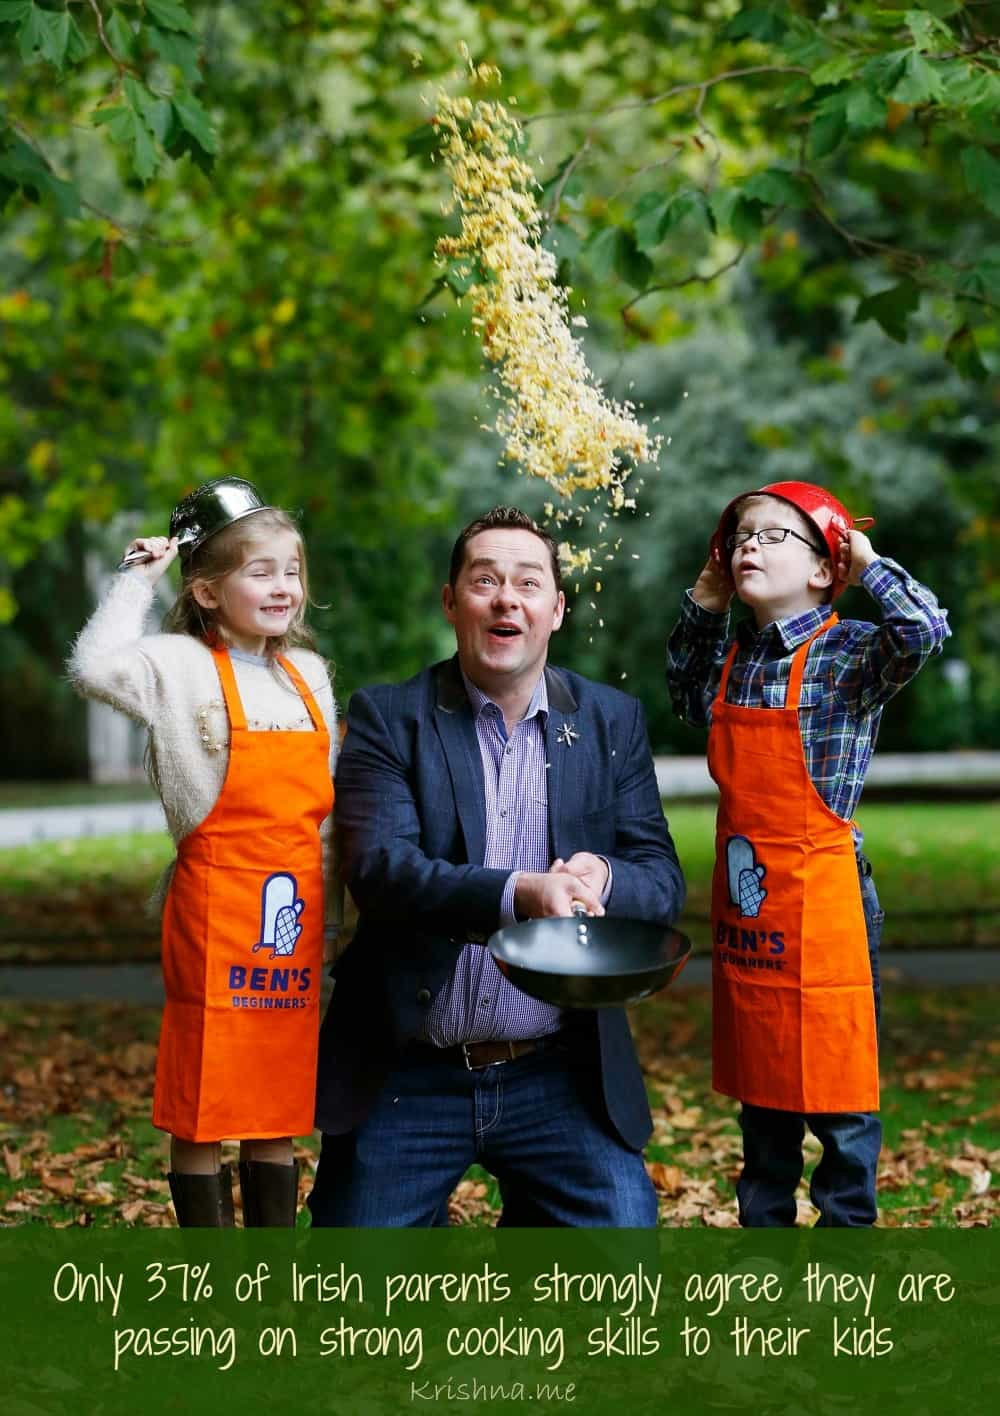 Research reveals Irish children's cooking ability and attitudes